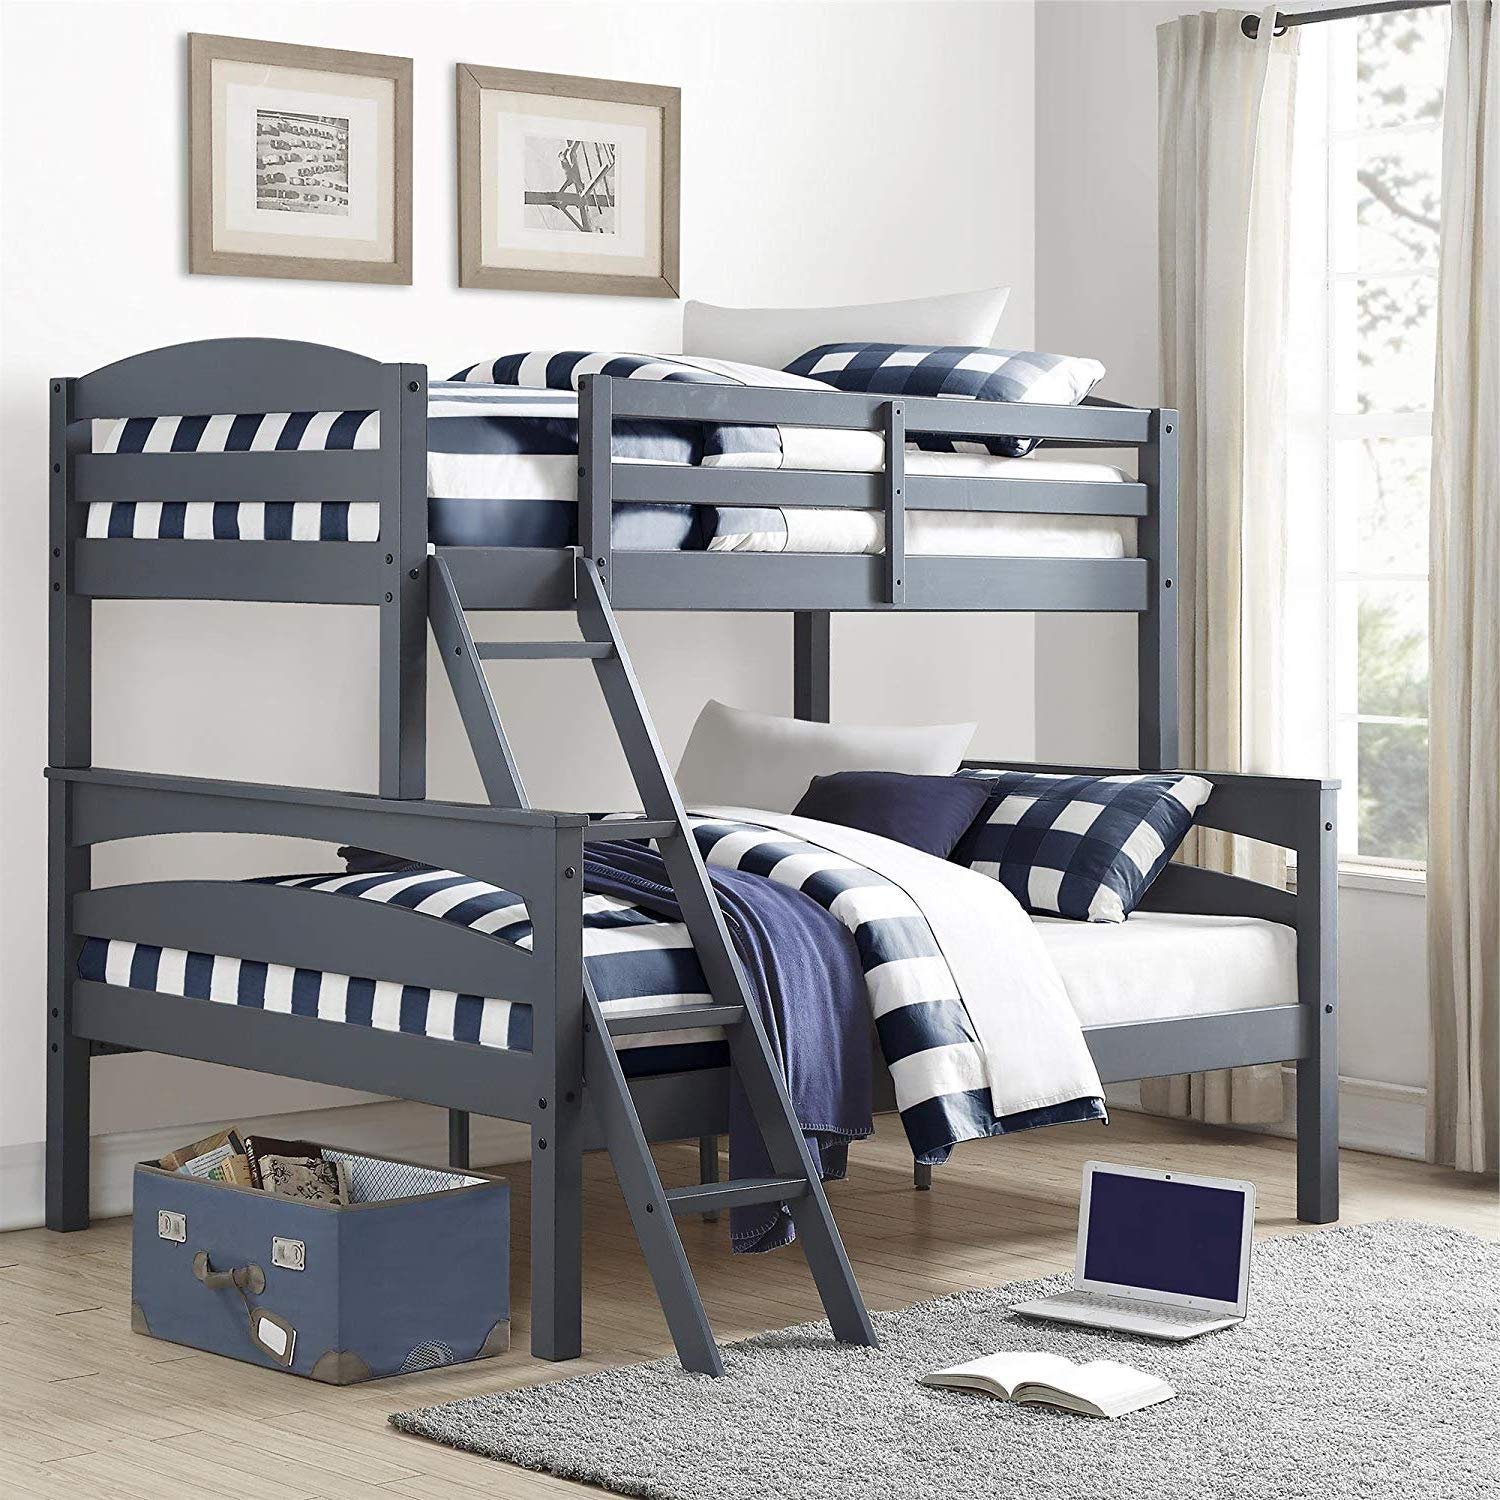 Picture of: Cheap Double Bunk Beds Ikea Find Double Bunk Beds Ikea Deals On Line At Alibaba Com